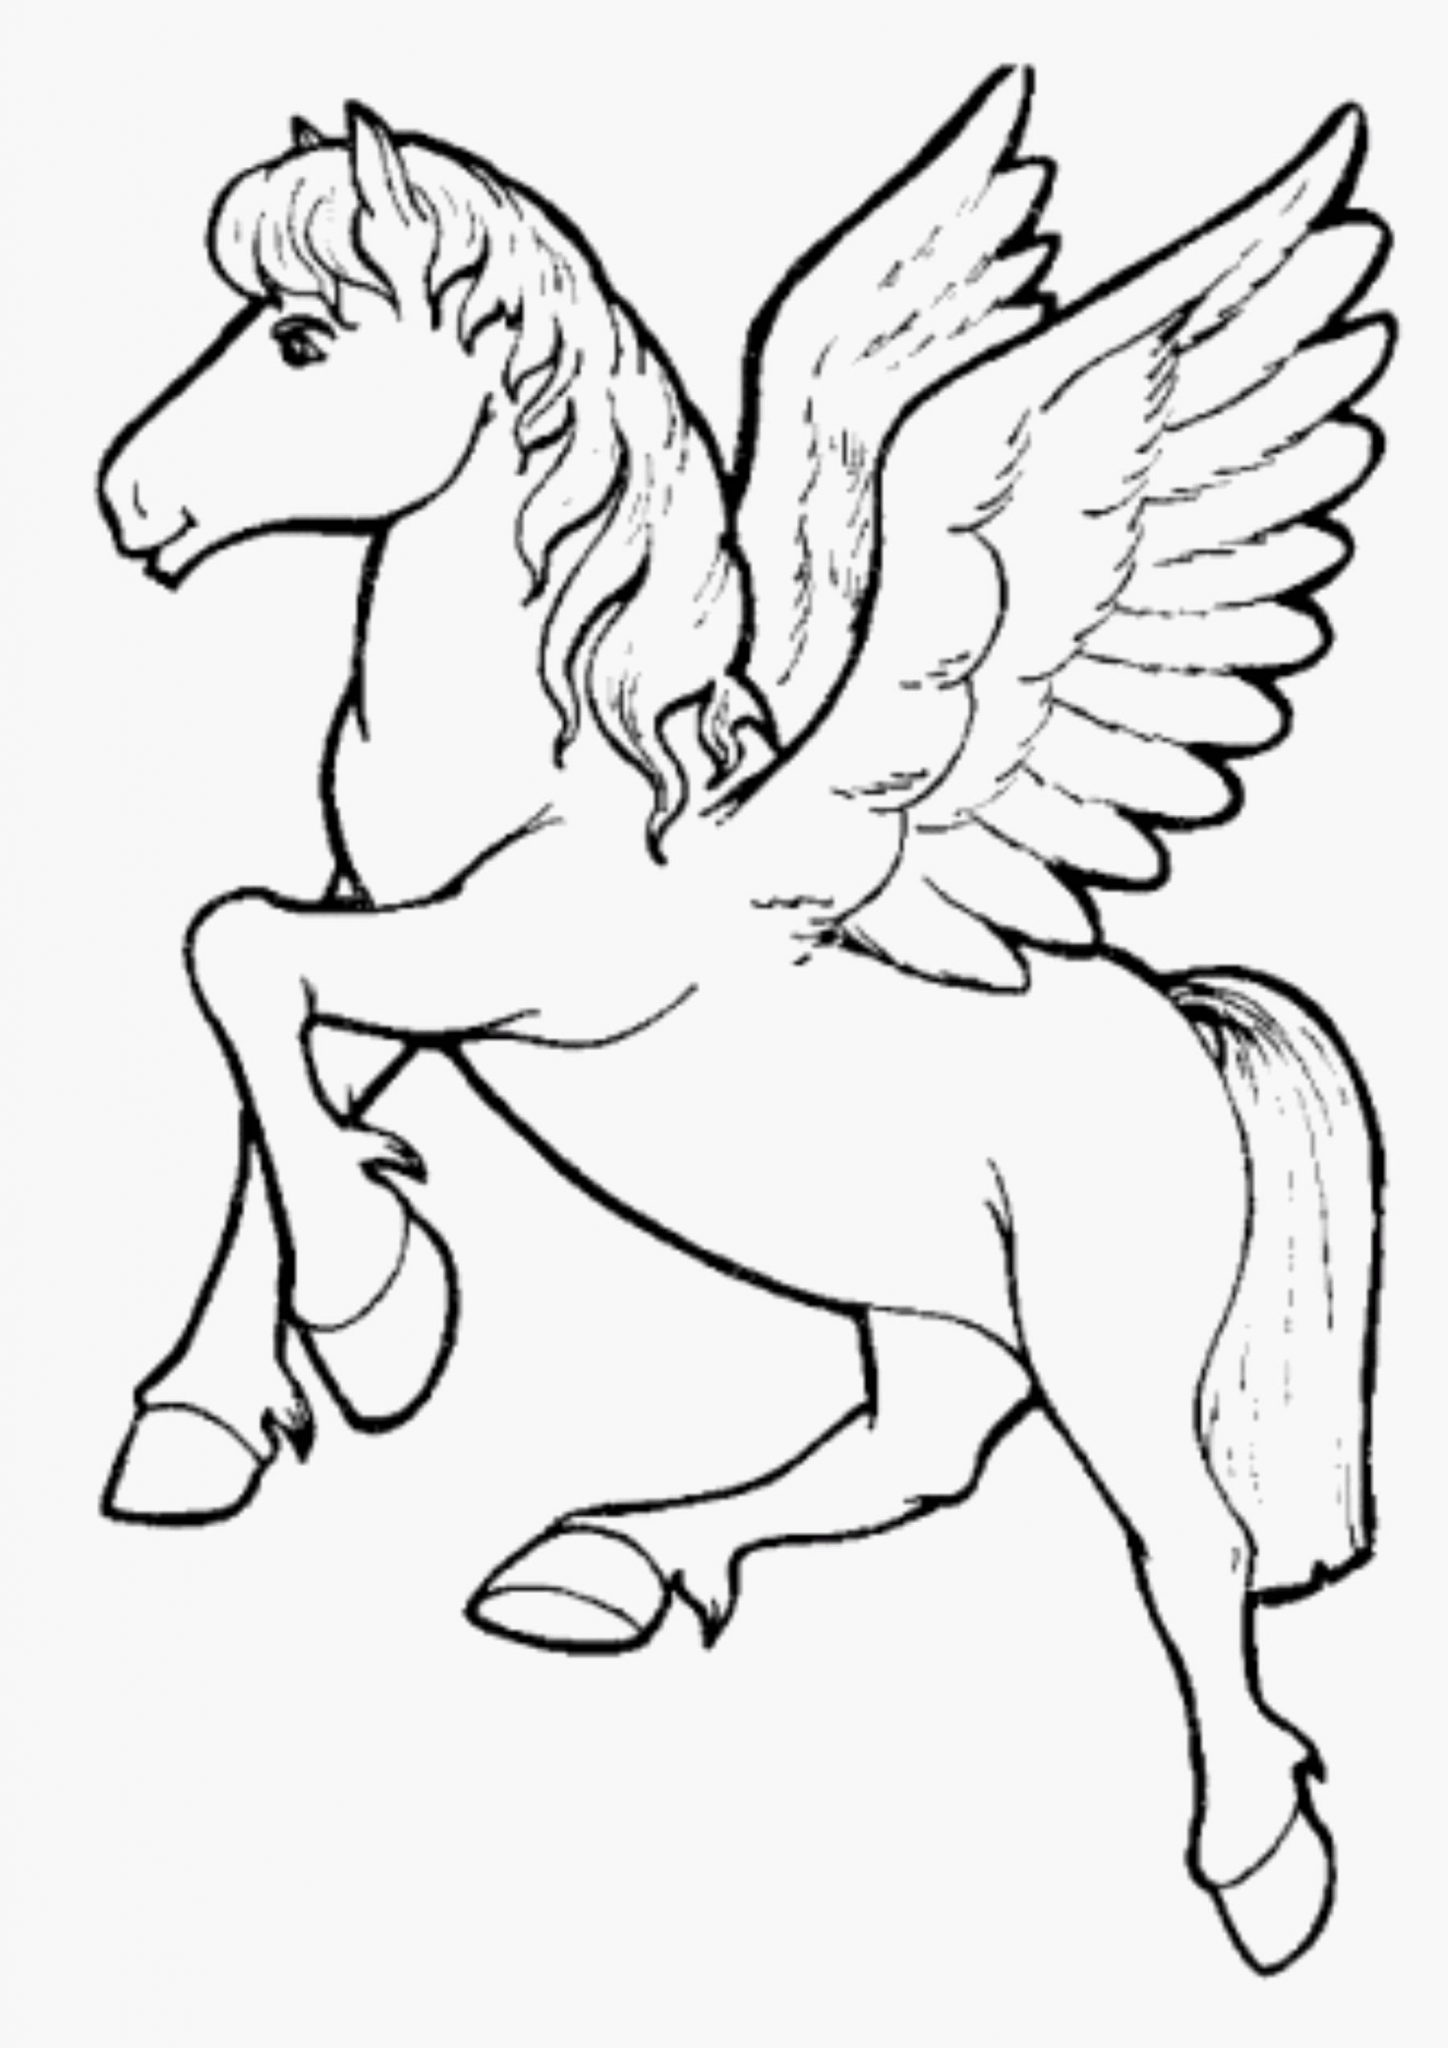 coloring worksheets unicorn free printable unicorn coloring pages winged 101 worksheets unicorn worksheets coloring